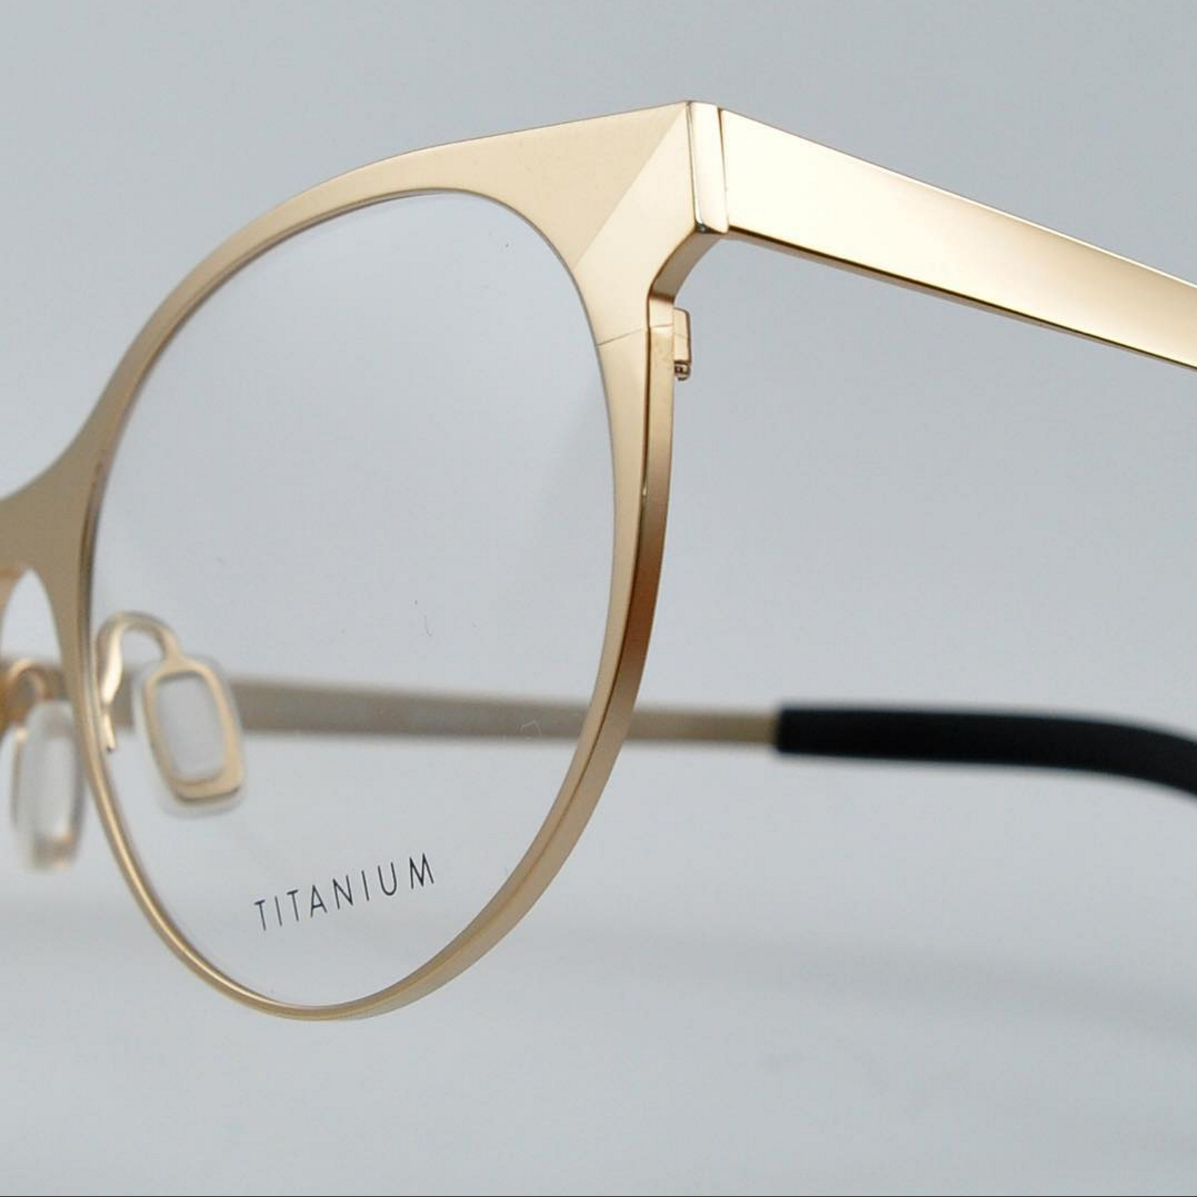 Simplicity in design crafted by hand in Japan. Discover our titanium ...